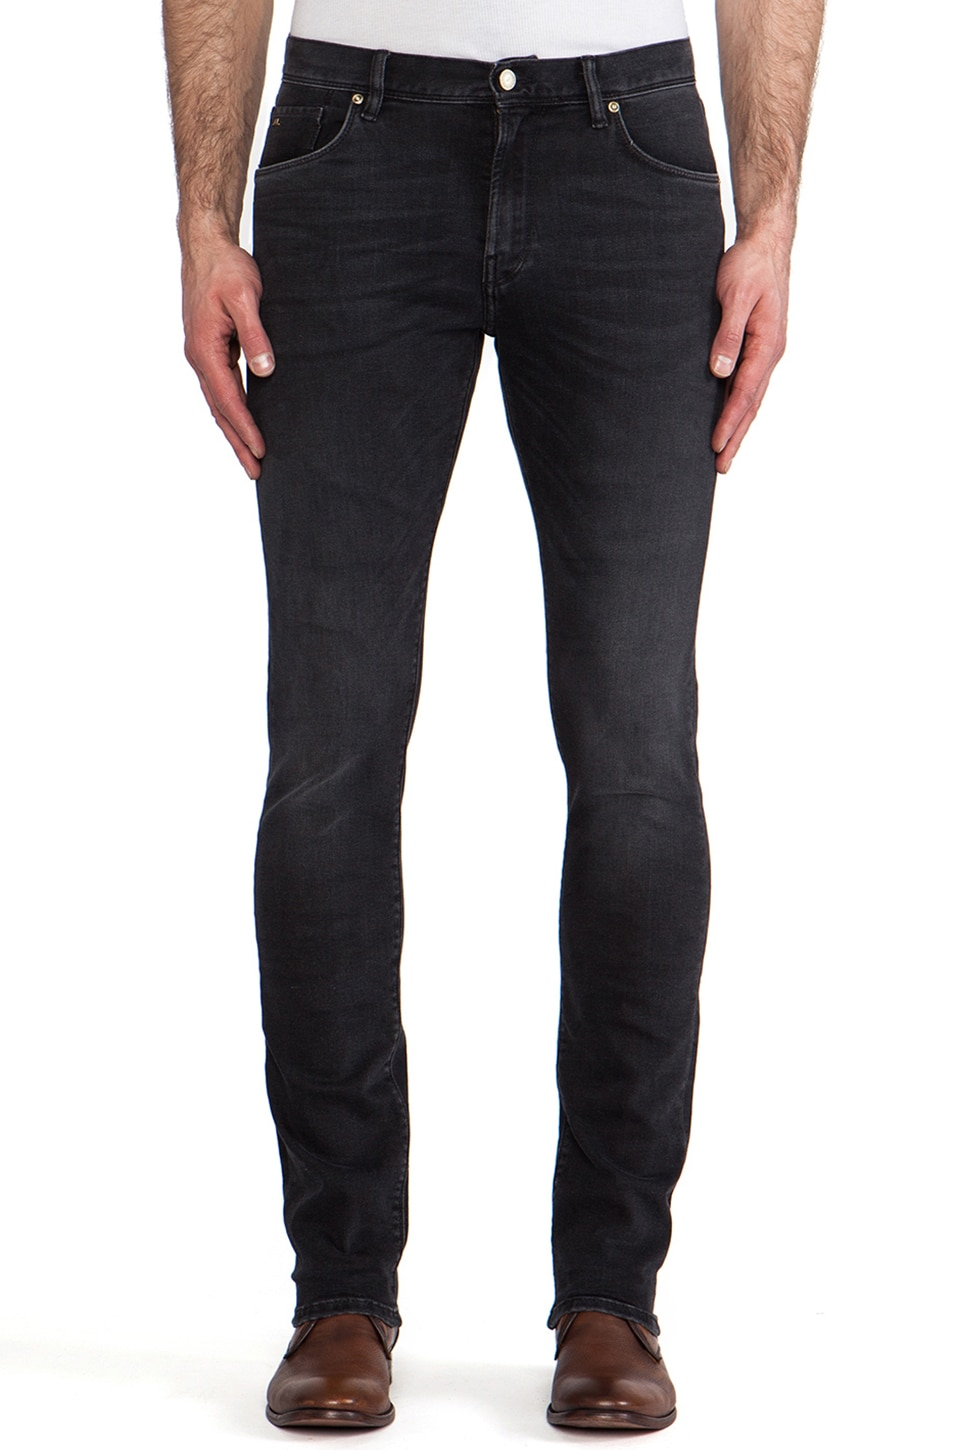 J. Lindeberg Damien Washed Stretch in Black